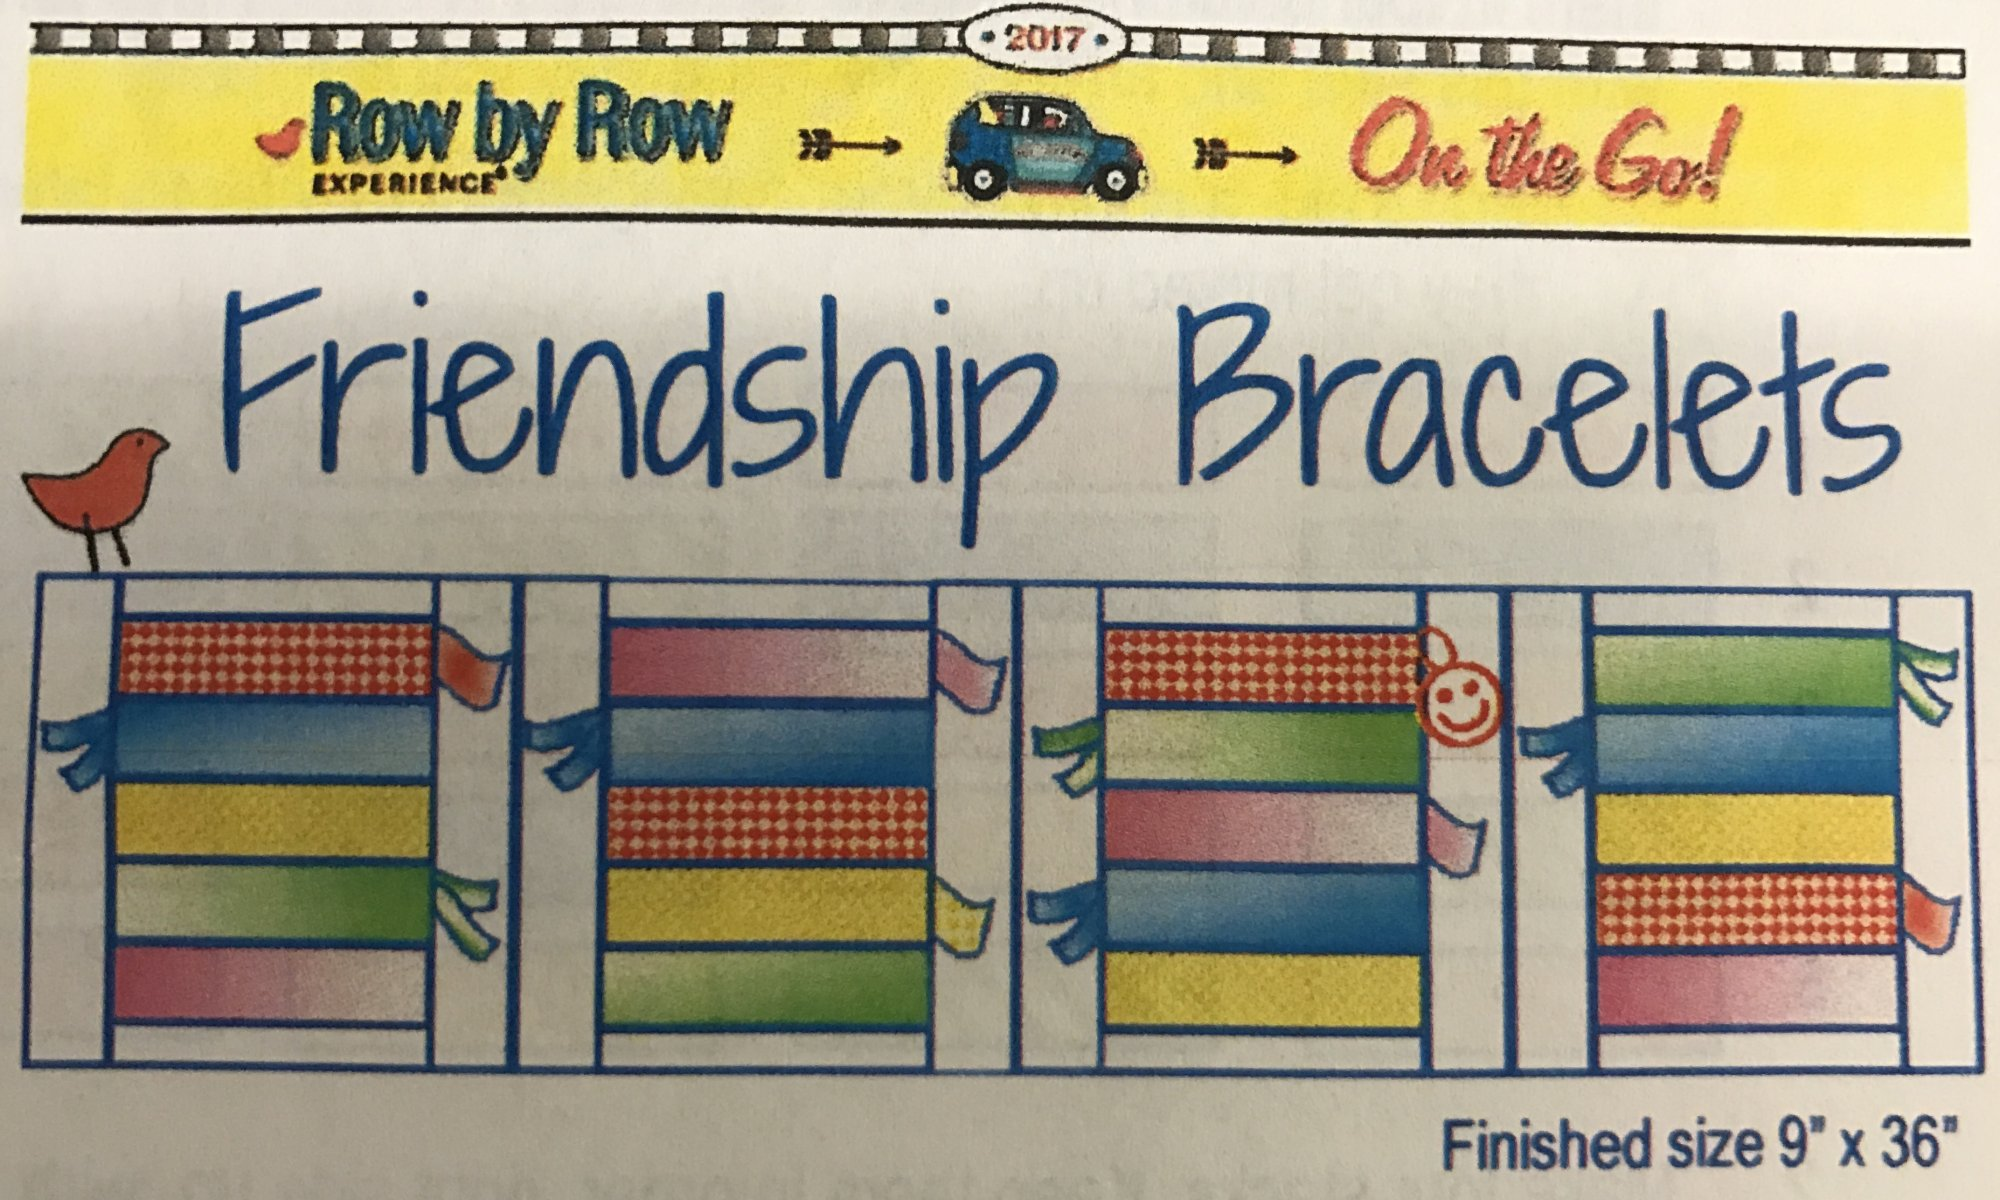 Jr Row by Row 2017 - Friendship Bracelets Kit